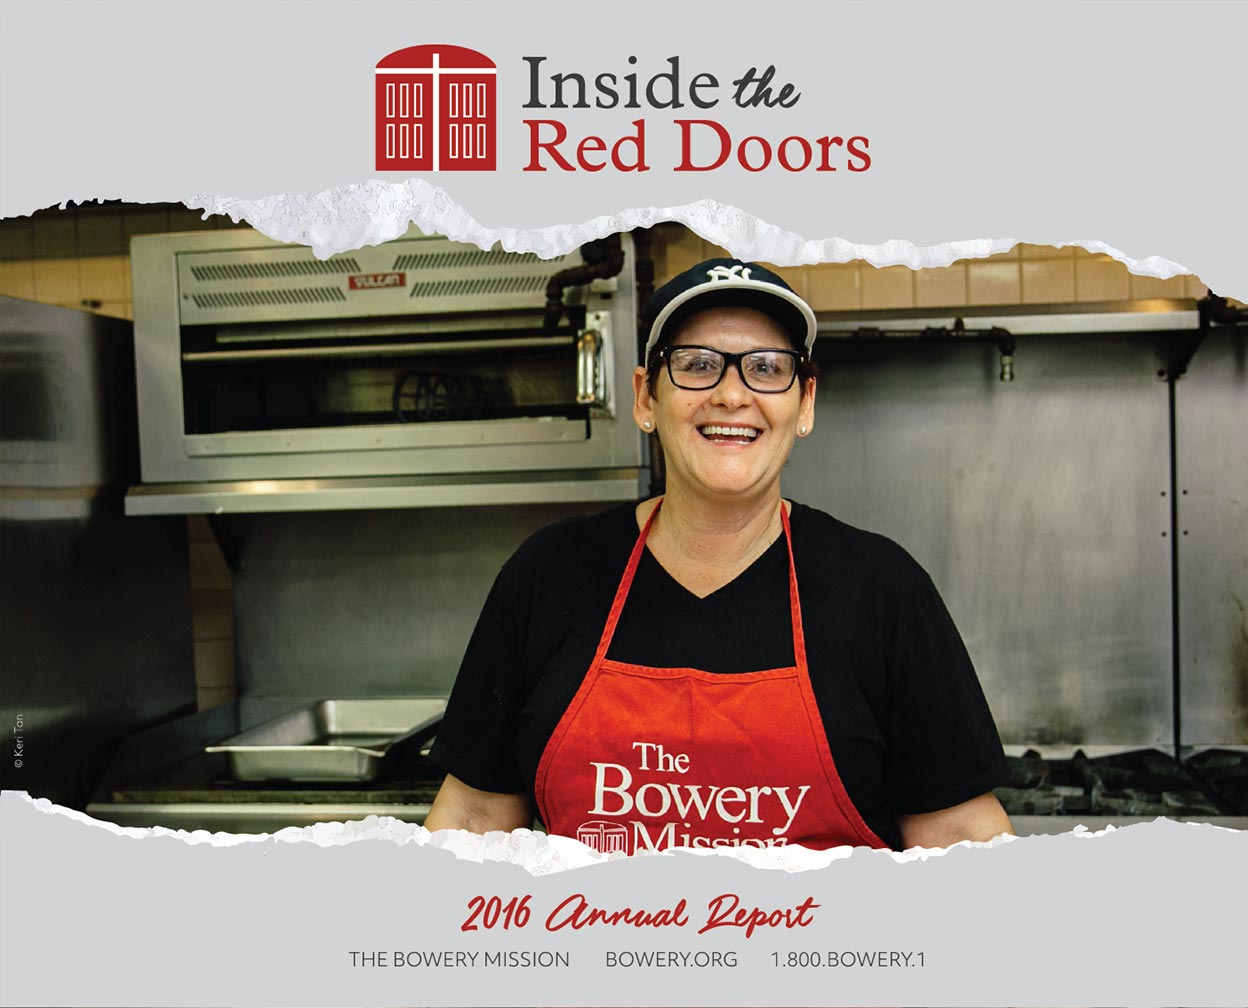 The Bowery Mission 2016 Annual Report